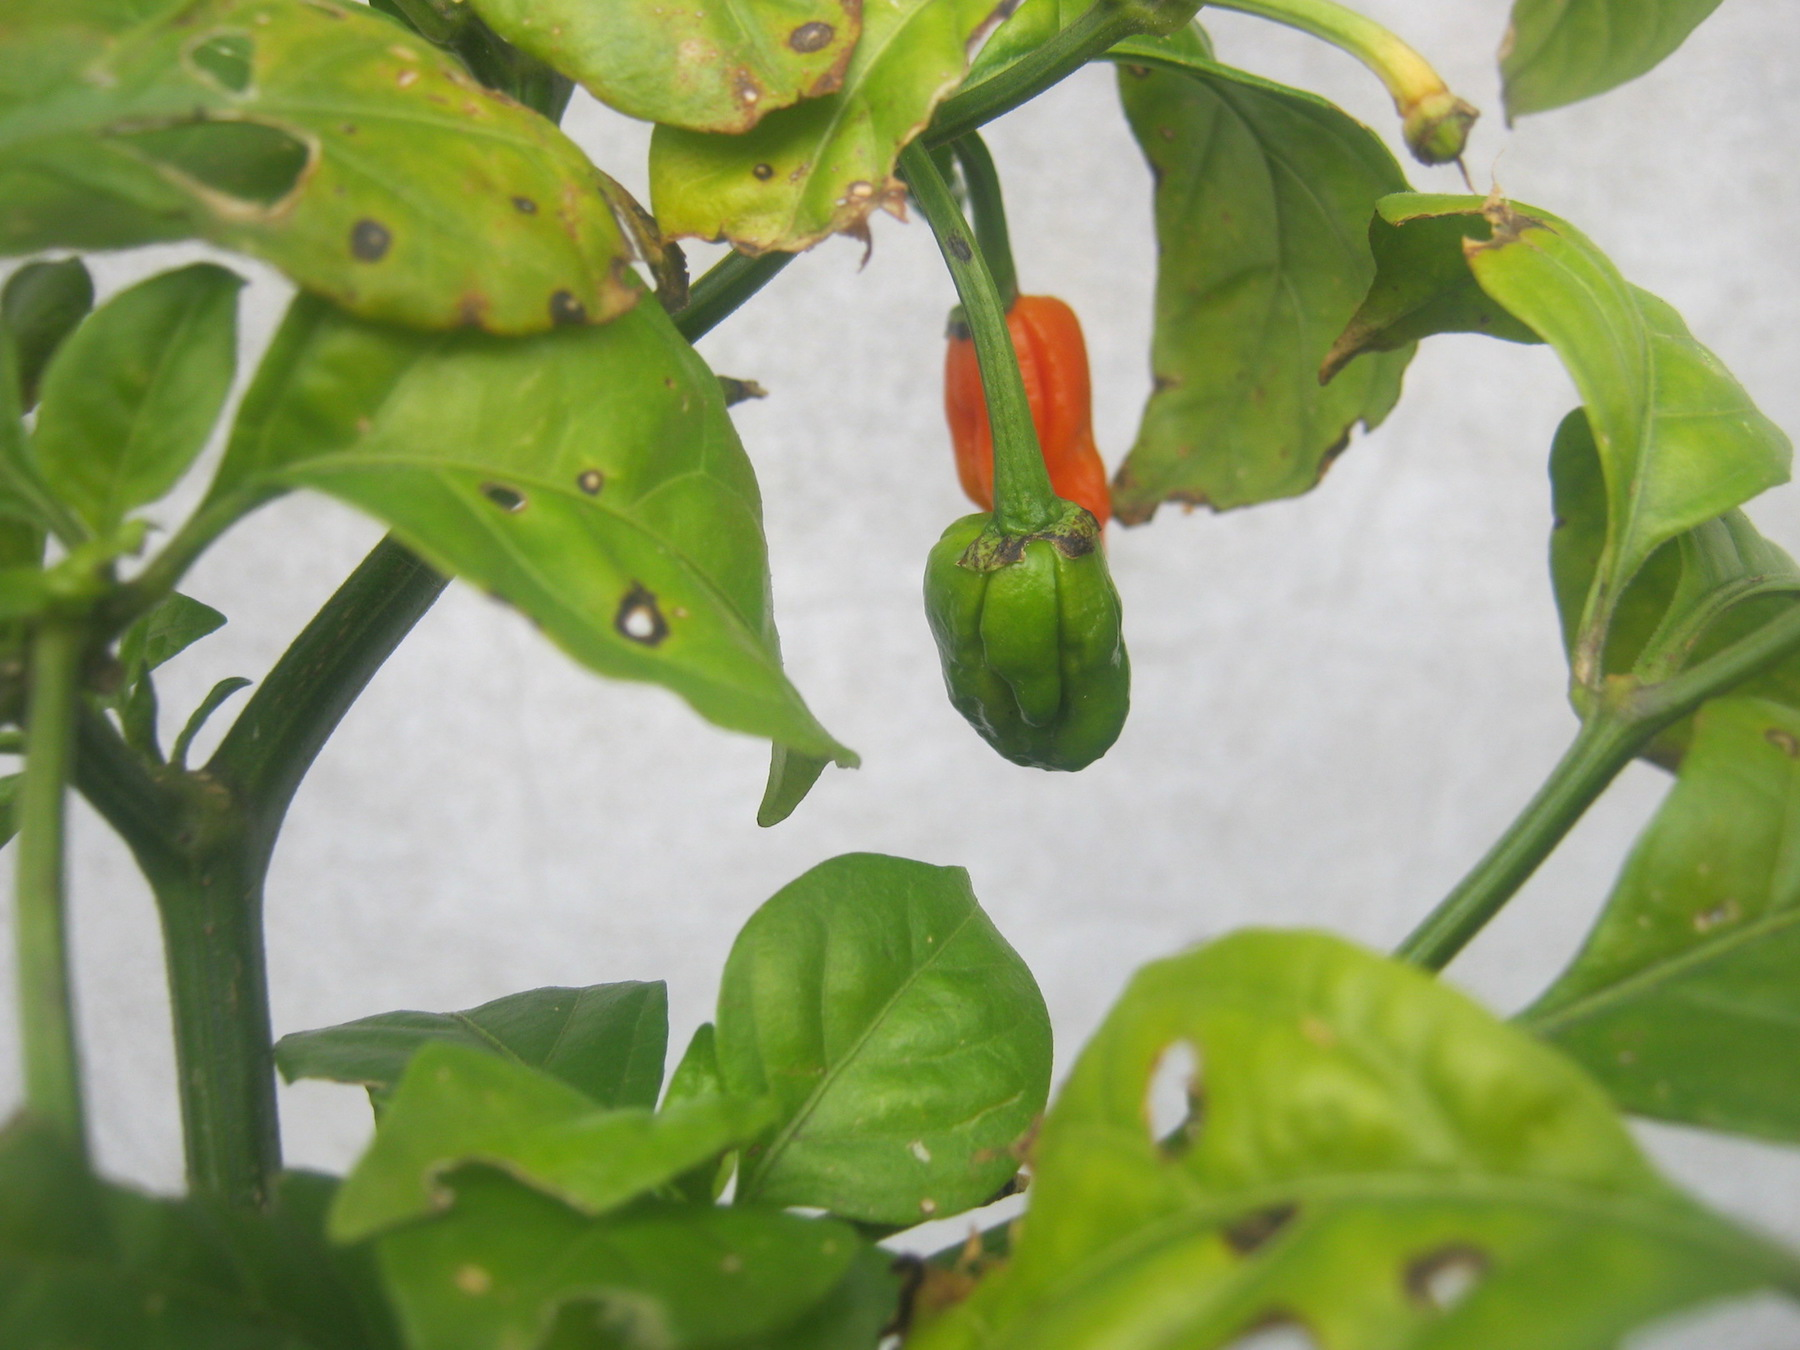 Tiny Carolina Reaper pods on plant just before Winter pruning